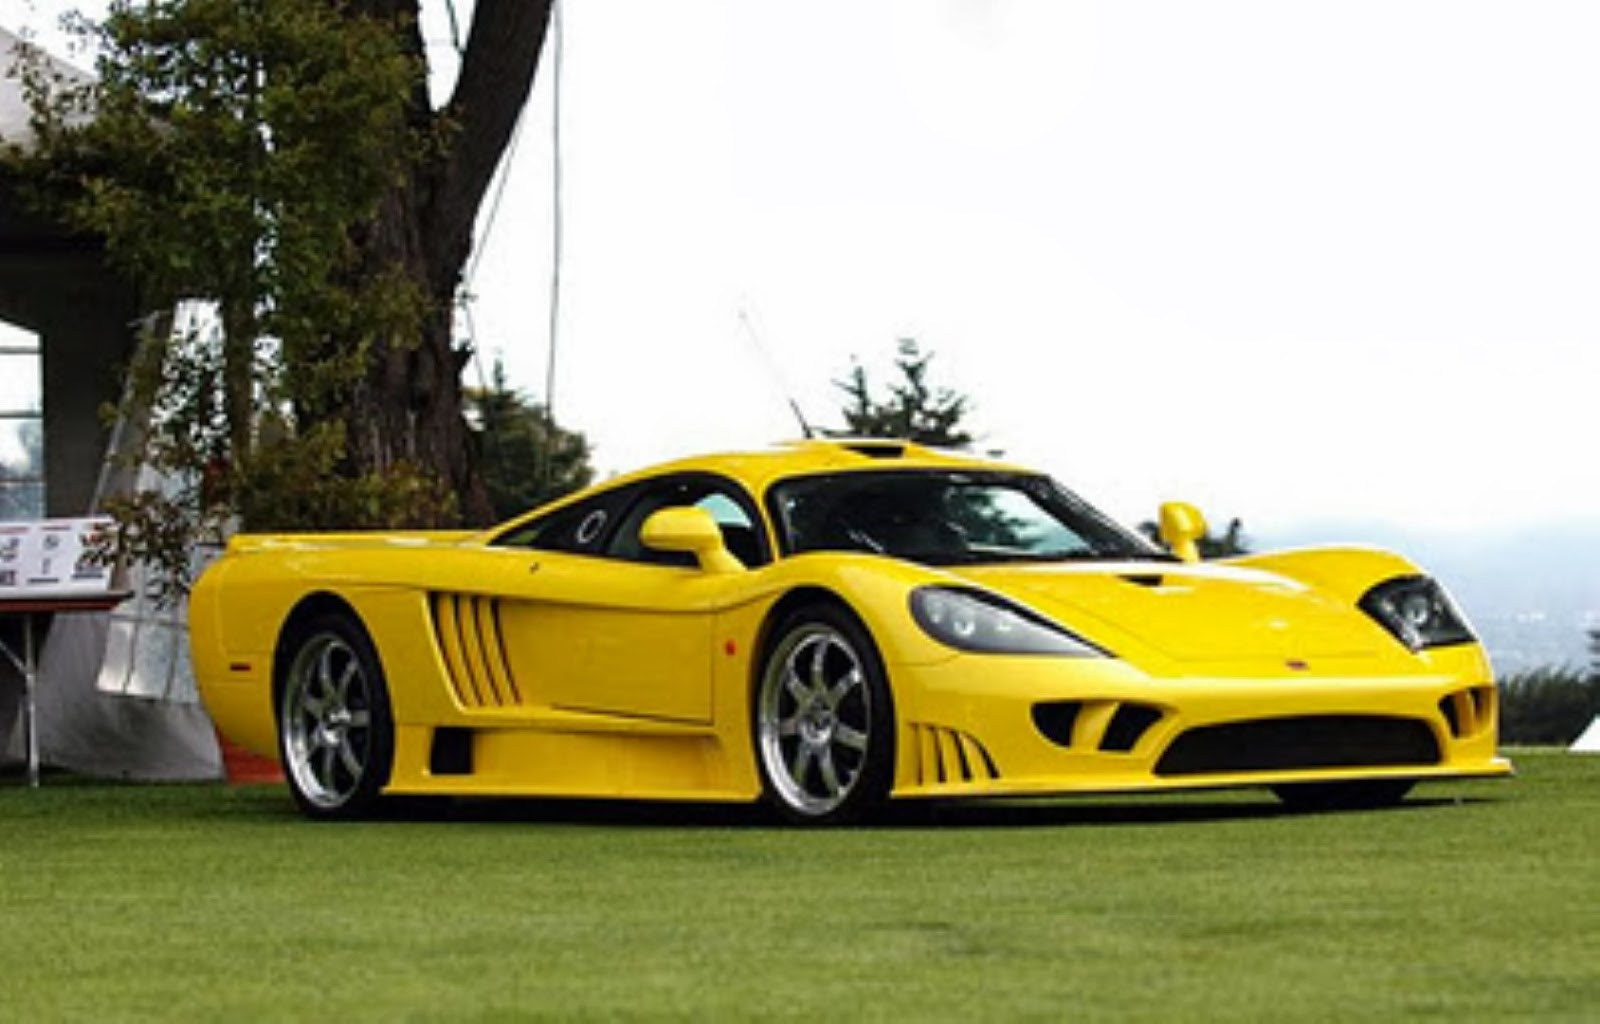 Cool Cars Images Wallpaper Page Of Downloadwallpaperorg - Cool yellow cars